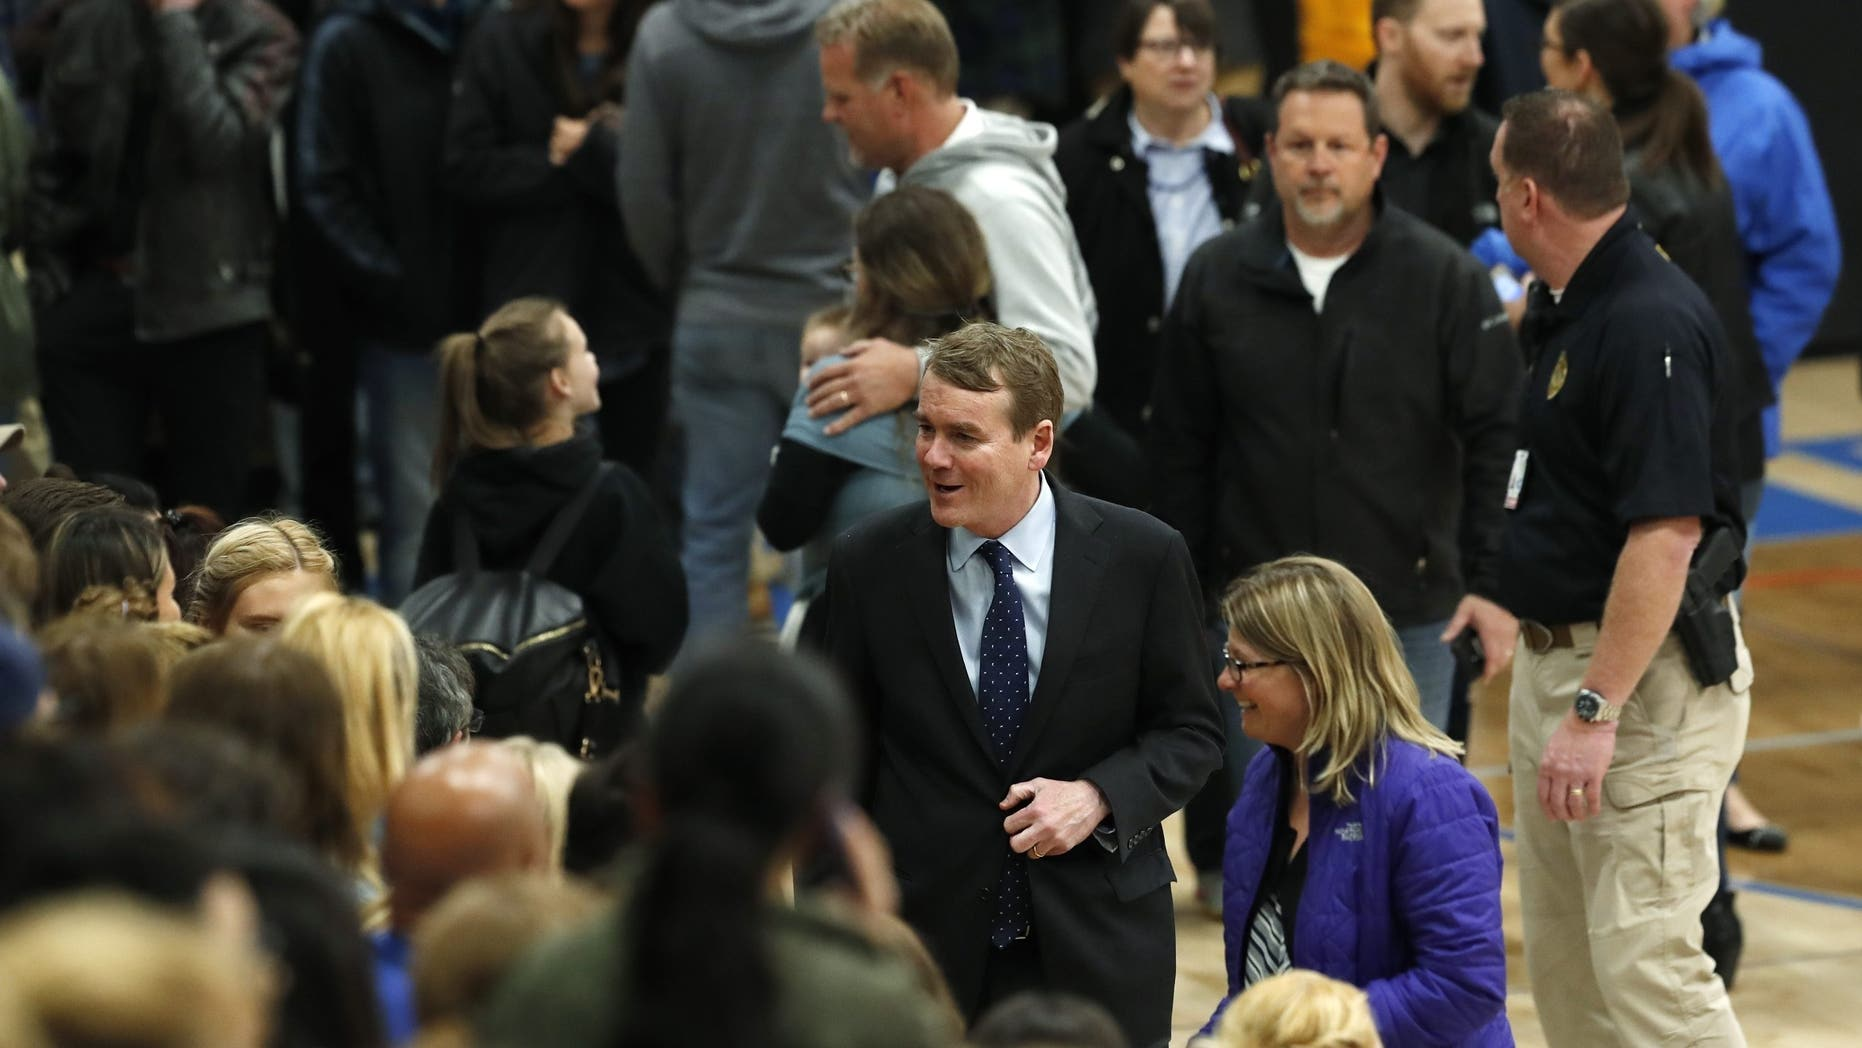 U.S. Sen. Michael Bennet, D-Colo., center, greets attendees during a community vigil to honor the victims and survivors of yesterday's fatal shooting at the STEM School Highlands Ranch, on Wednesday, May 8, 2019, in Highlands Ranch, Colo. (AP Photo/David Zalubowski)